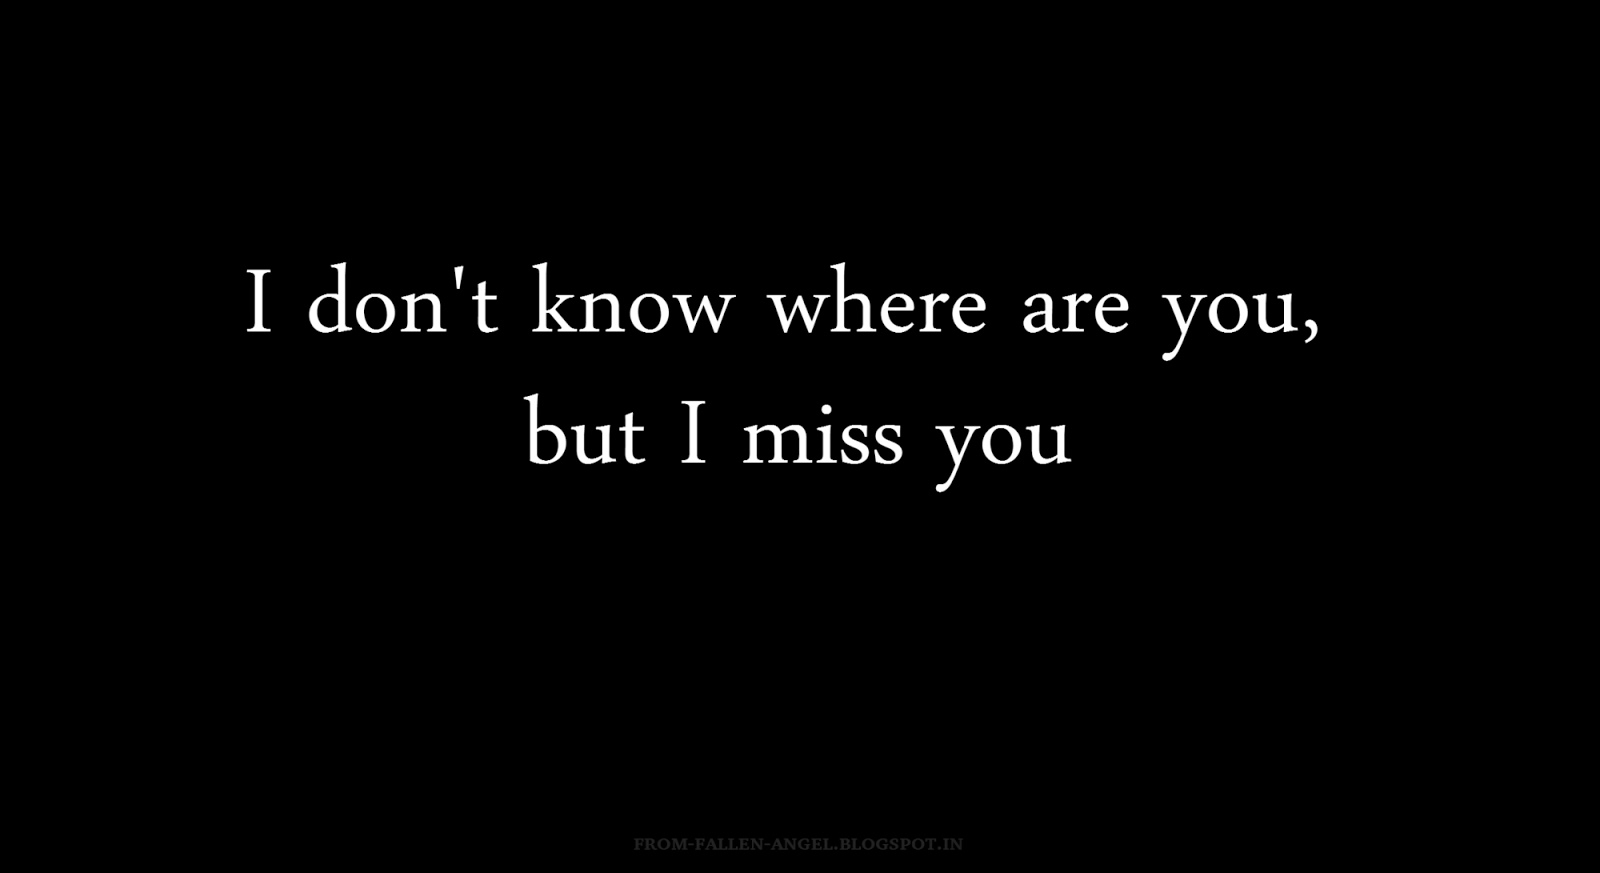 I don't know where are you, but I miss you